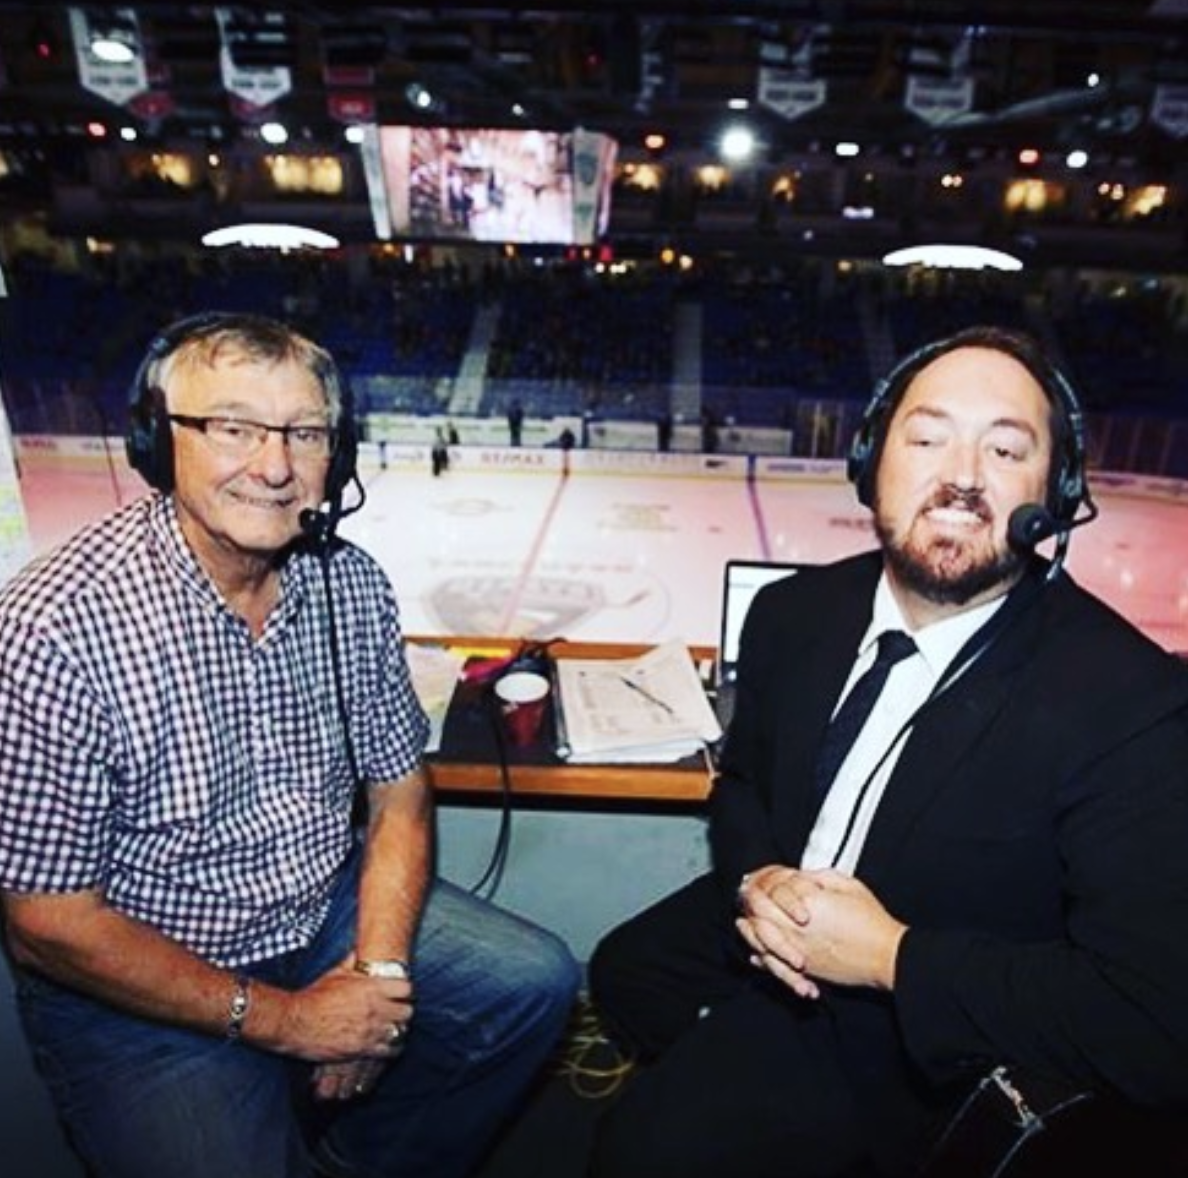 Dan O'Connor and side commentator Bill Wilms